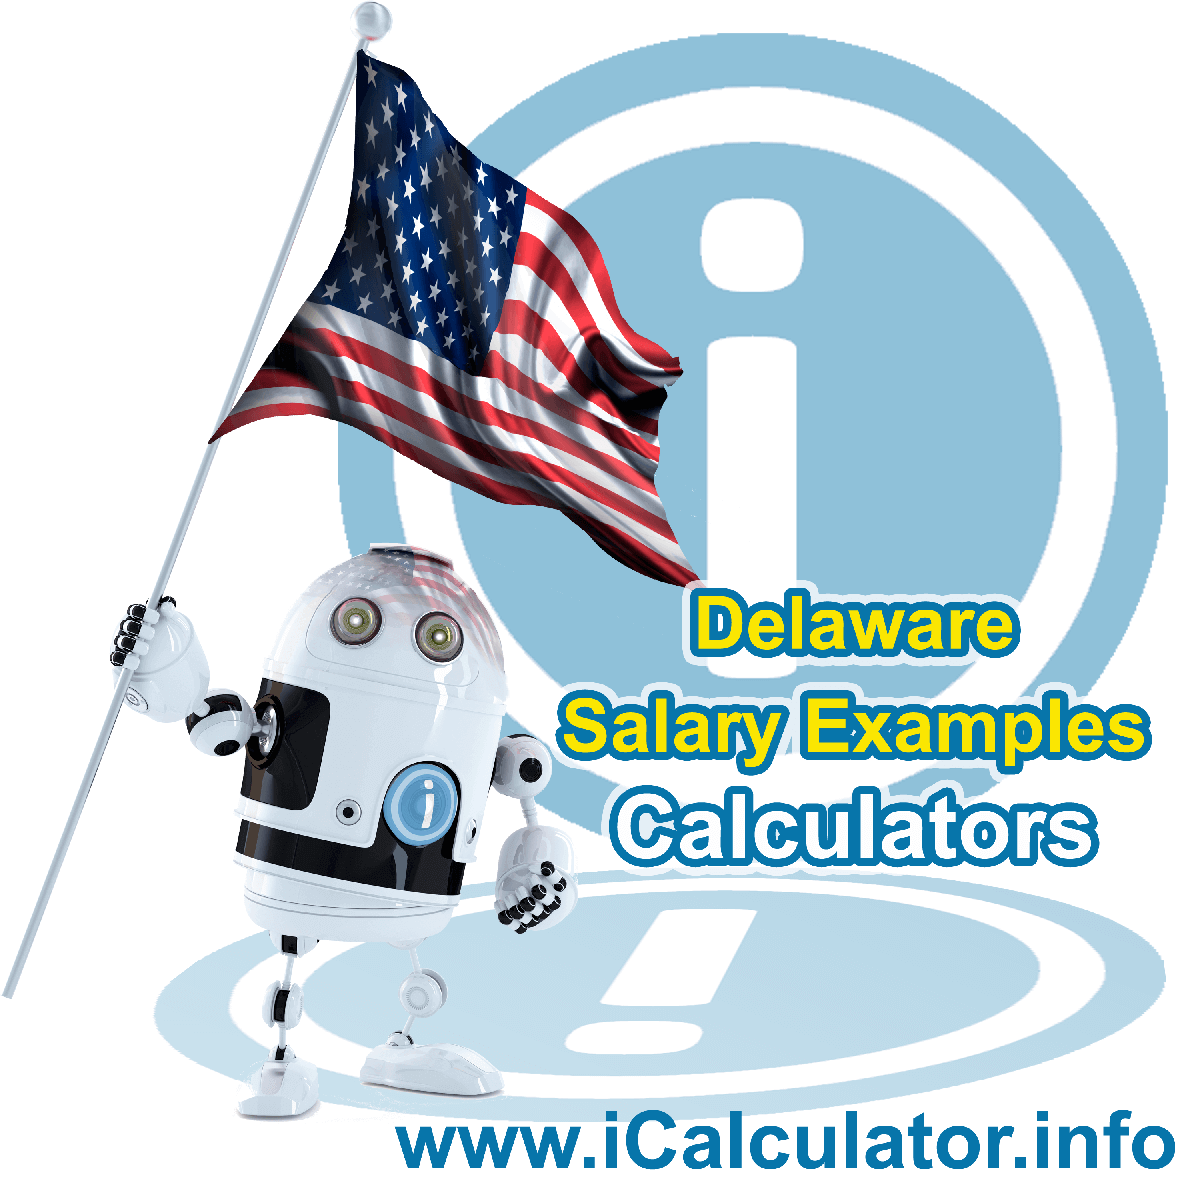 Delaware Salary Example for $15,000.00 in 2020 | iCalculator | $15,000.00 salary example for employee and employer paying Delaware State tincome taxes. Detailed salary after tax calculation including Delaware State Tax, Federal State Tax, Medicare Deductions, Social Security, Capital Gains and other income tax and salary deductions complete with supporting Delaware state tax tables